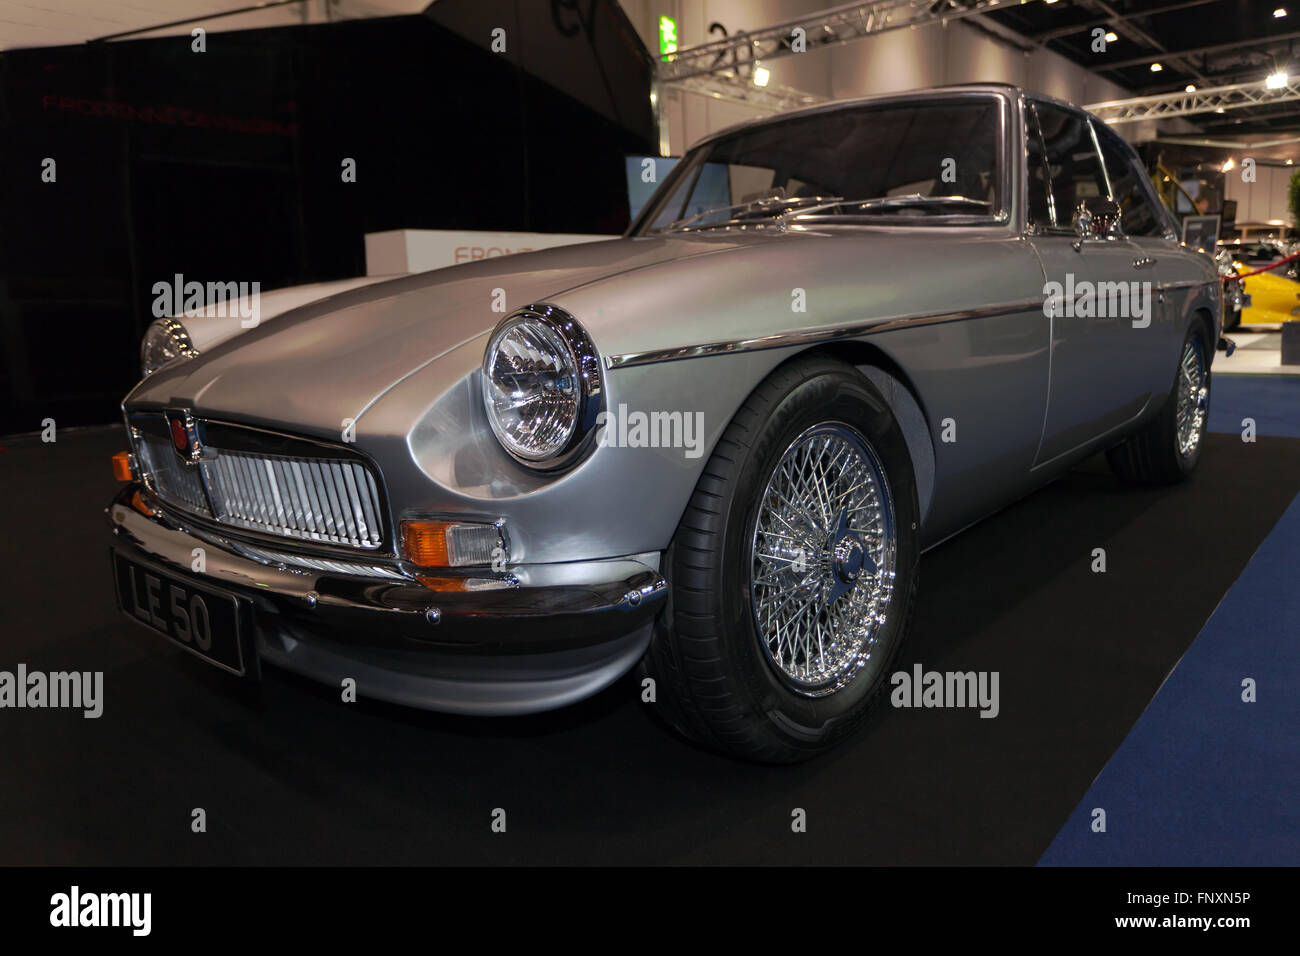 A beautiful restored silver mgb gt on static display at the 2016 london classic car